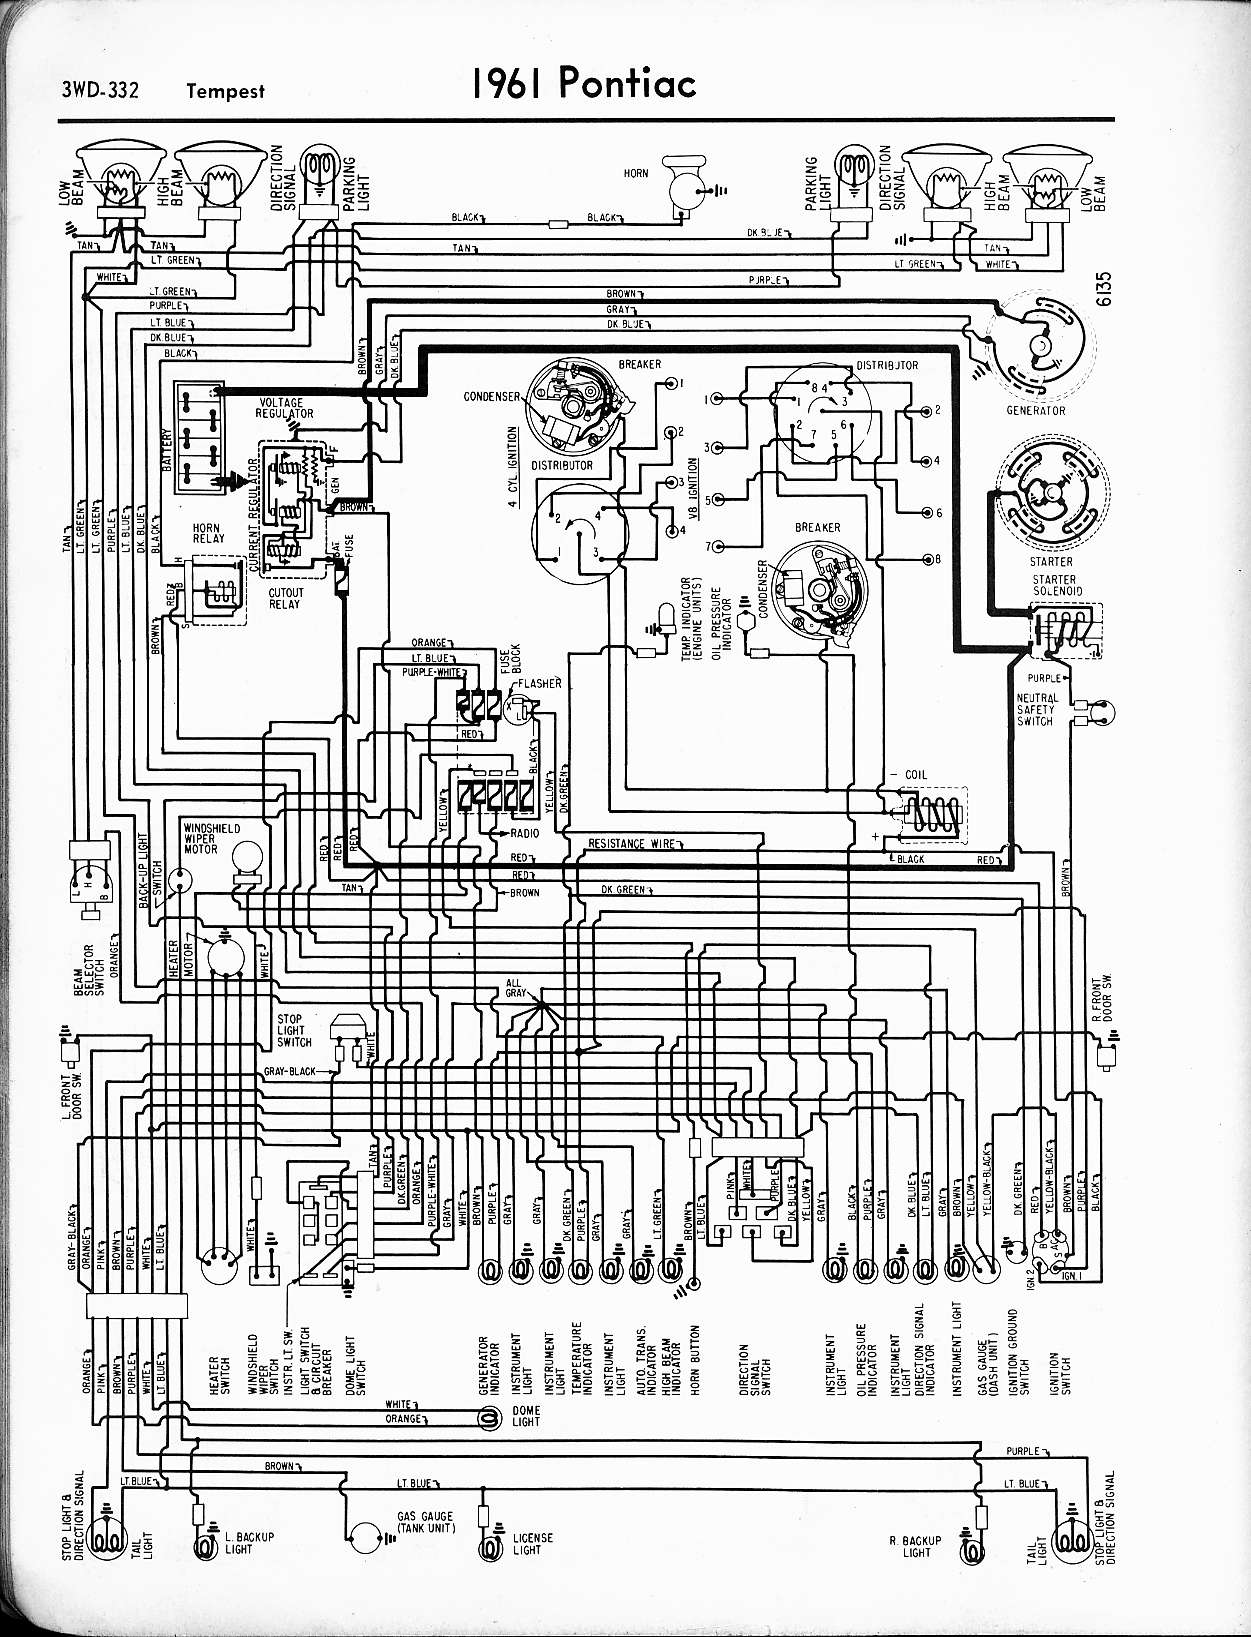 1969 triumph bonneville engine diagram wiring diagrams name Triumph Bonneville Parts Diagram